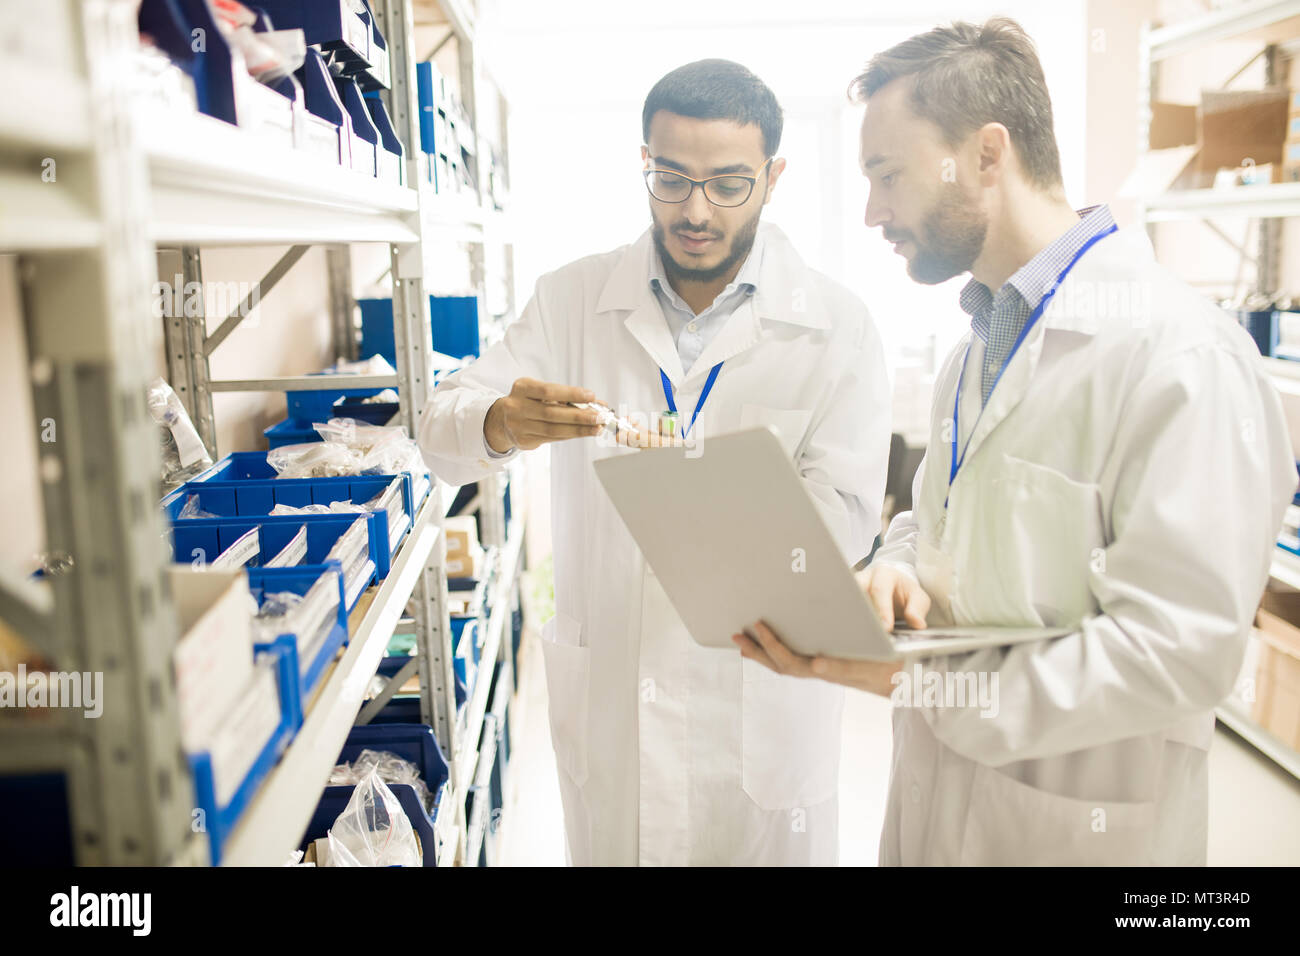 Qualified technicians analyzing measuring devices - Stock Image